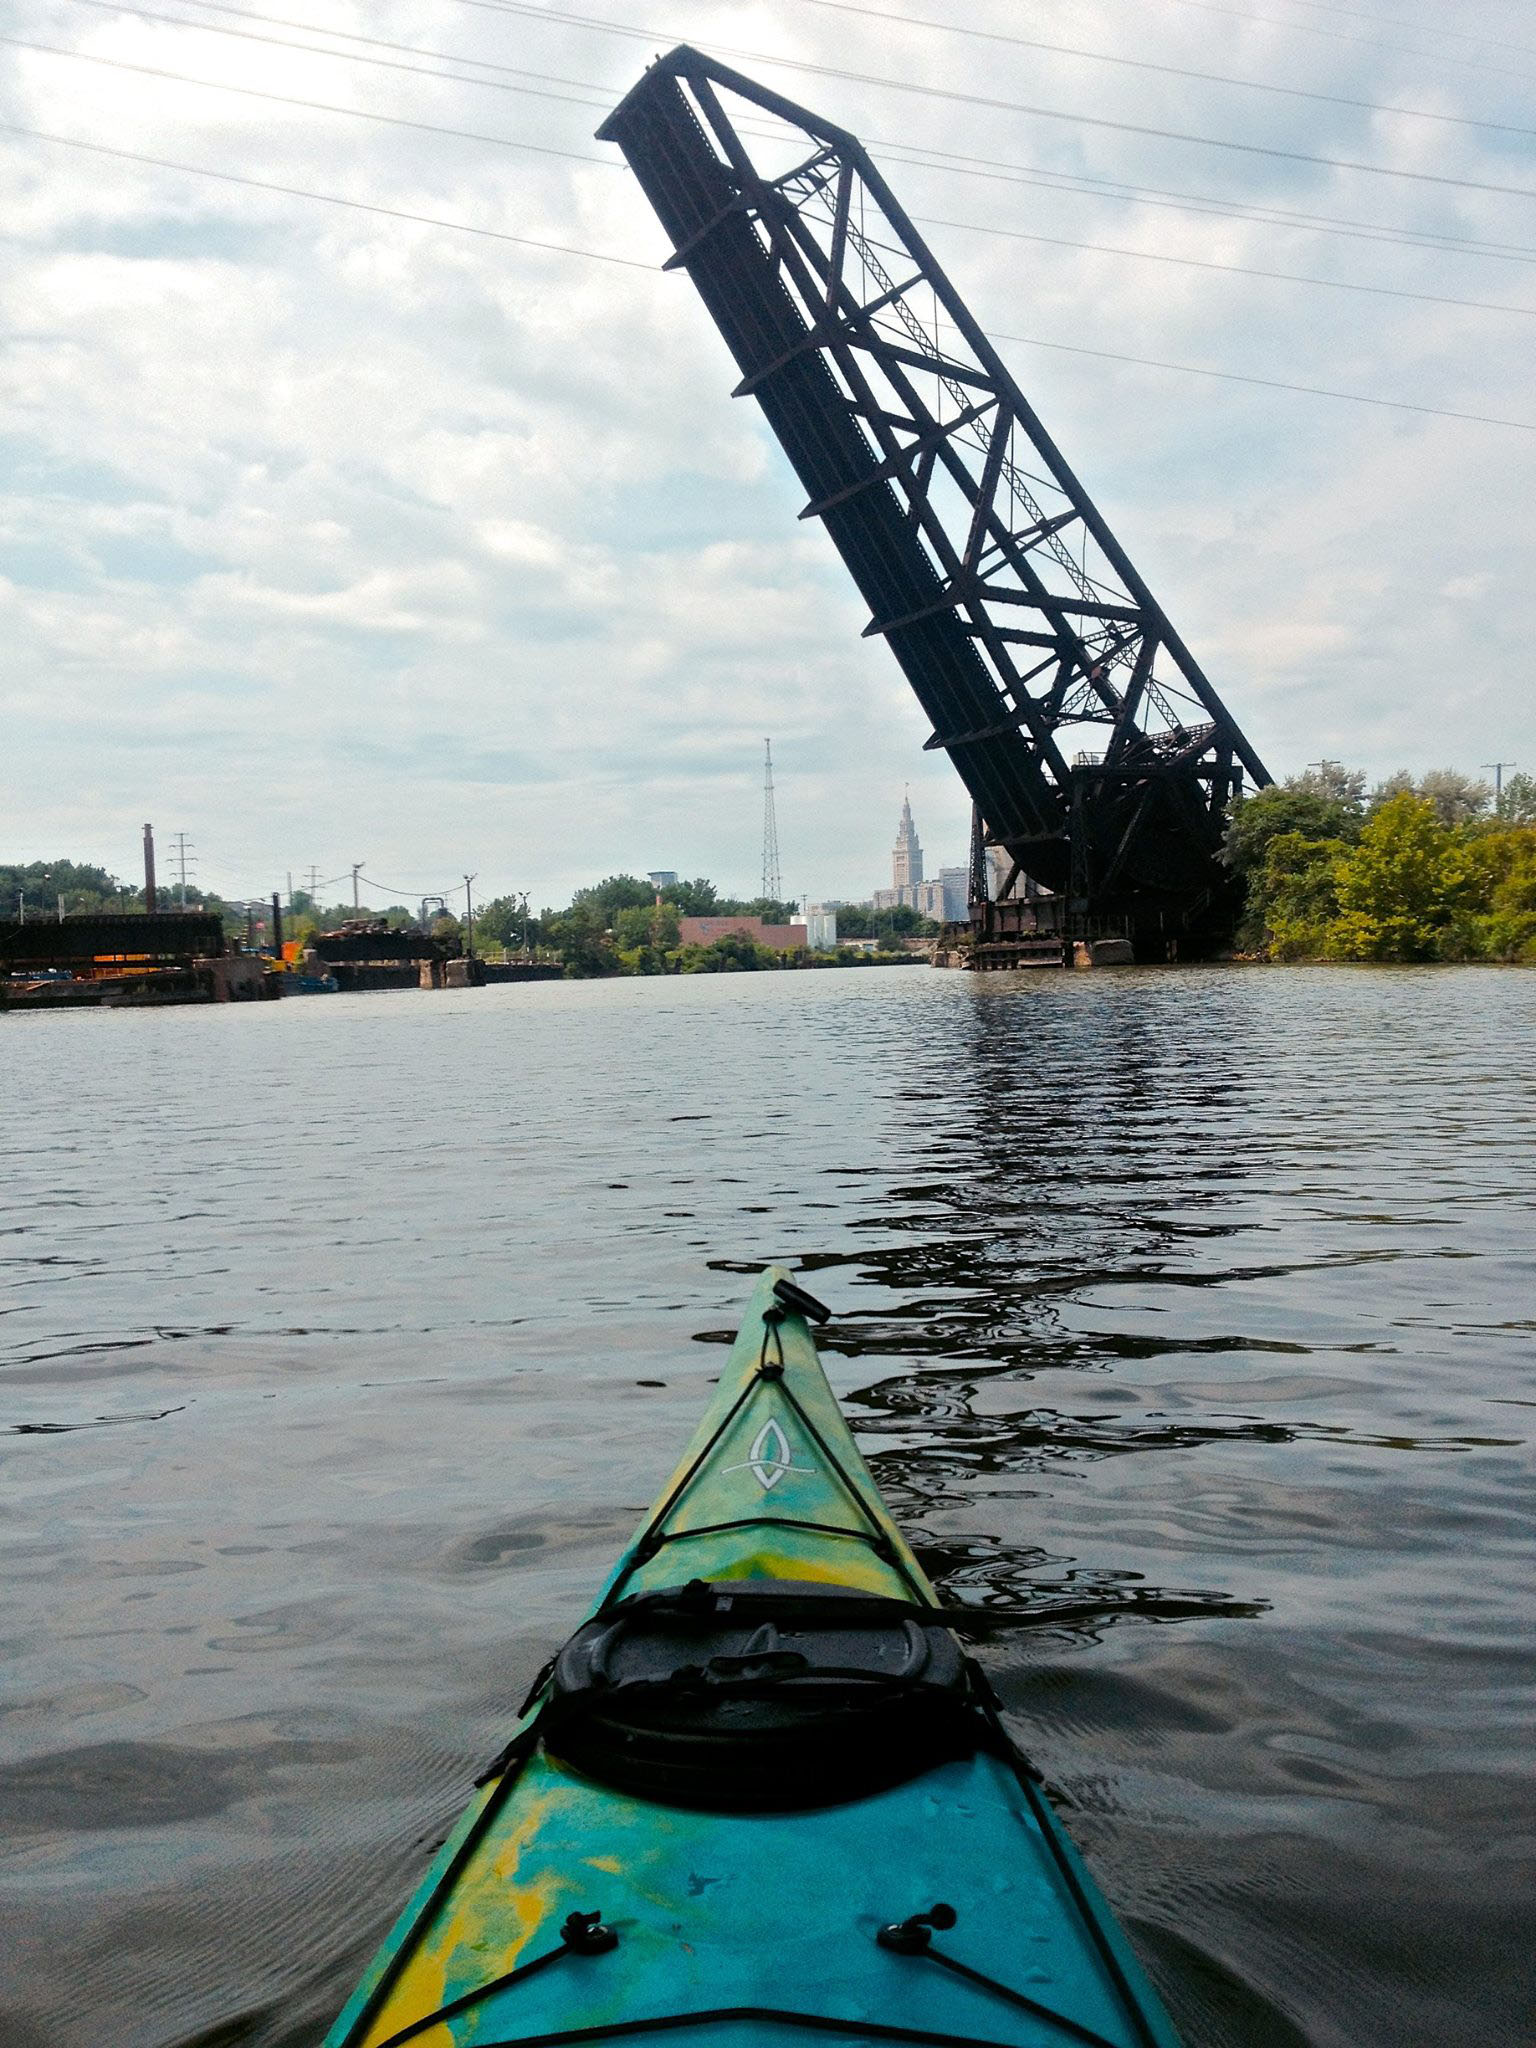 Entering the almost six-mile federal shipping channel through Cleveland, the river's current slows and huge smokestacks, freighters and slanted jackknife bridges loom on the horizon.